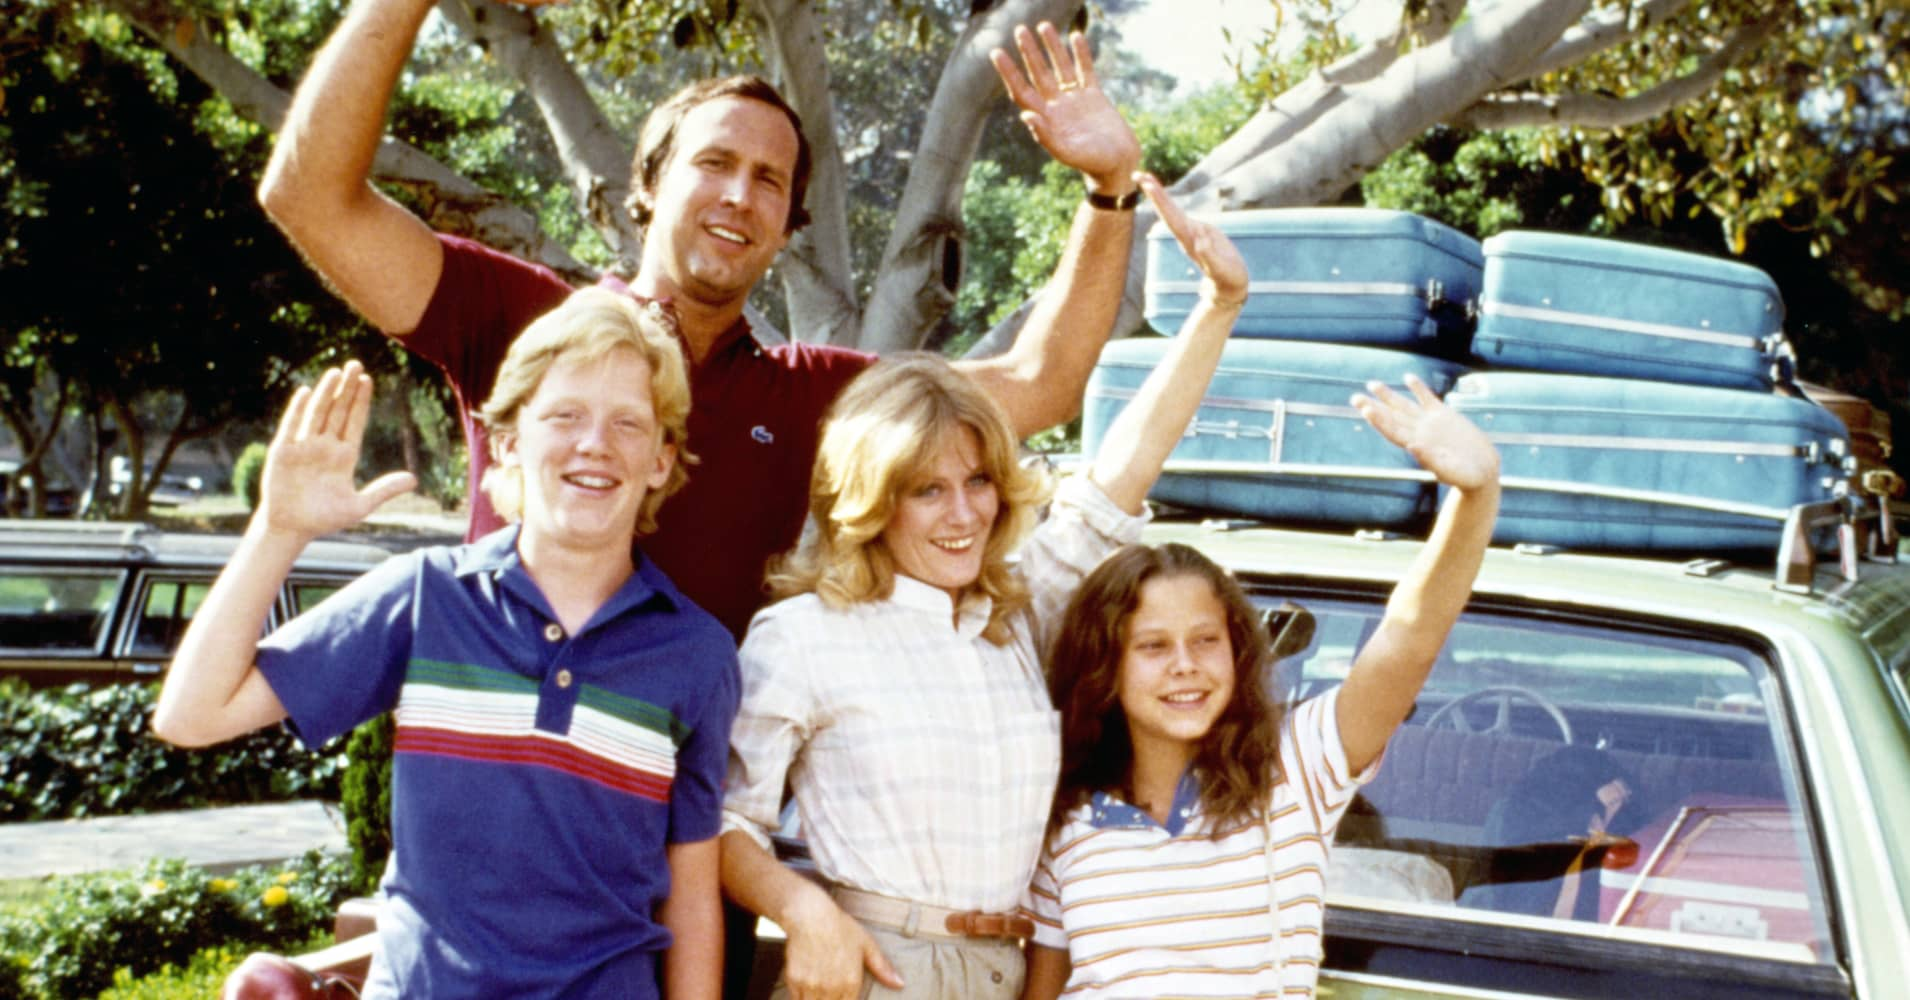 Anthony Michael Hall, Chevy Chase, Beverly D'Angelo, and Dana Barron waving from car in a scene from the film 'Vacation', 1983.